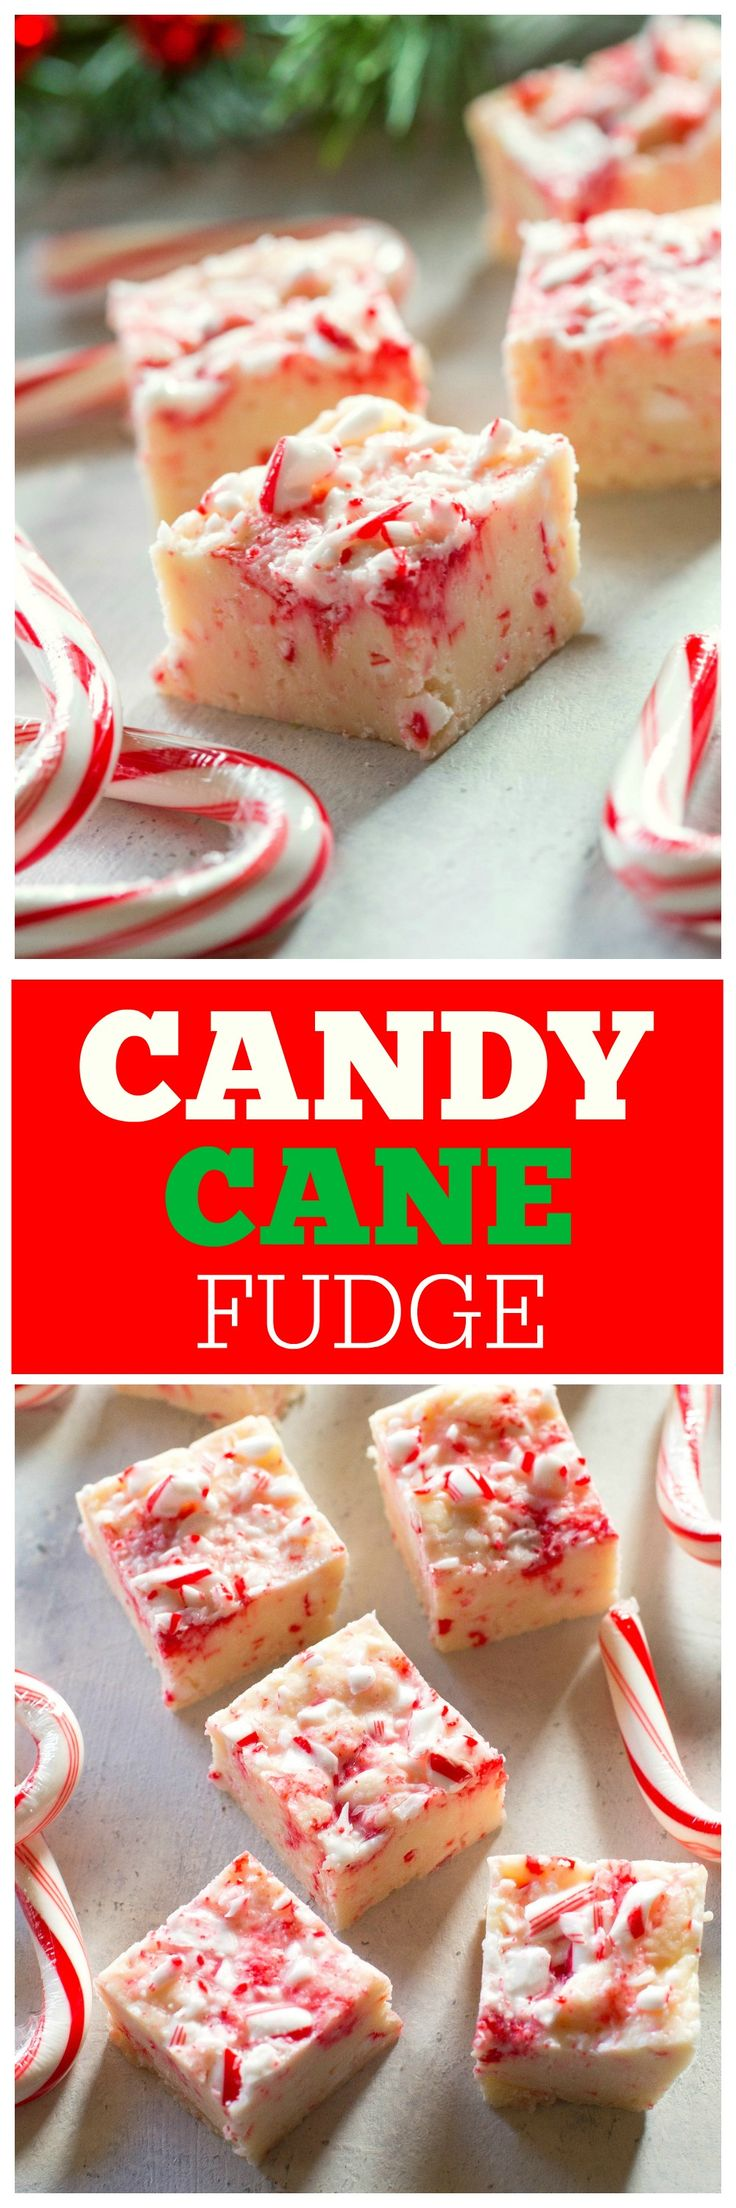 Candy Cane Fudge - only 5 ingredients and so delicious. the-girl-who-ate-everything.com